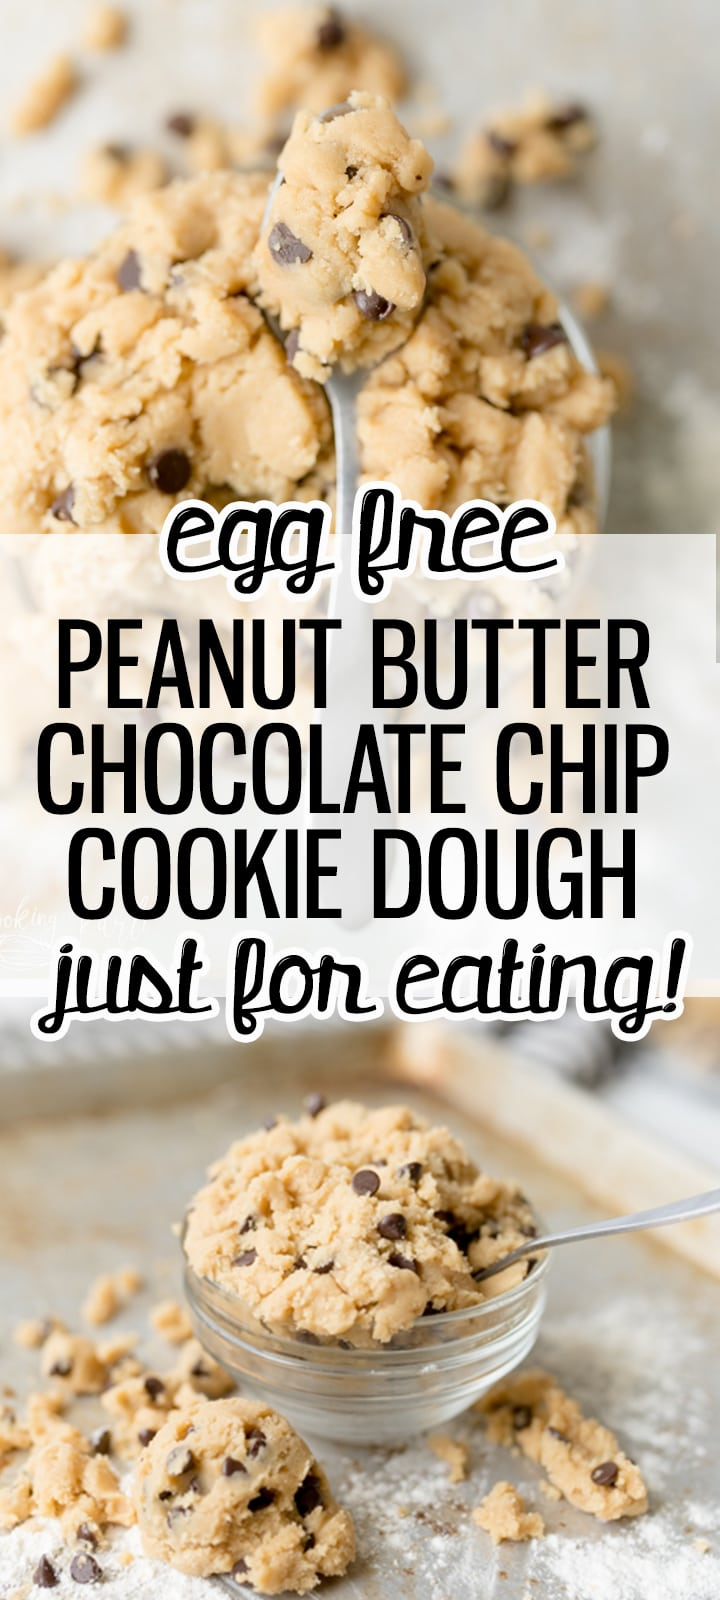 peanut butter chocolate chip cookie dough pin image